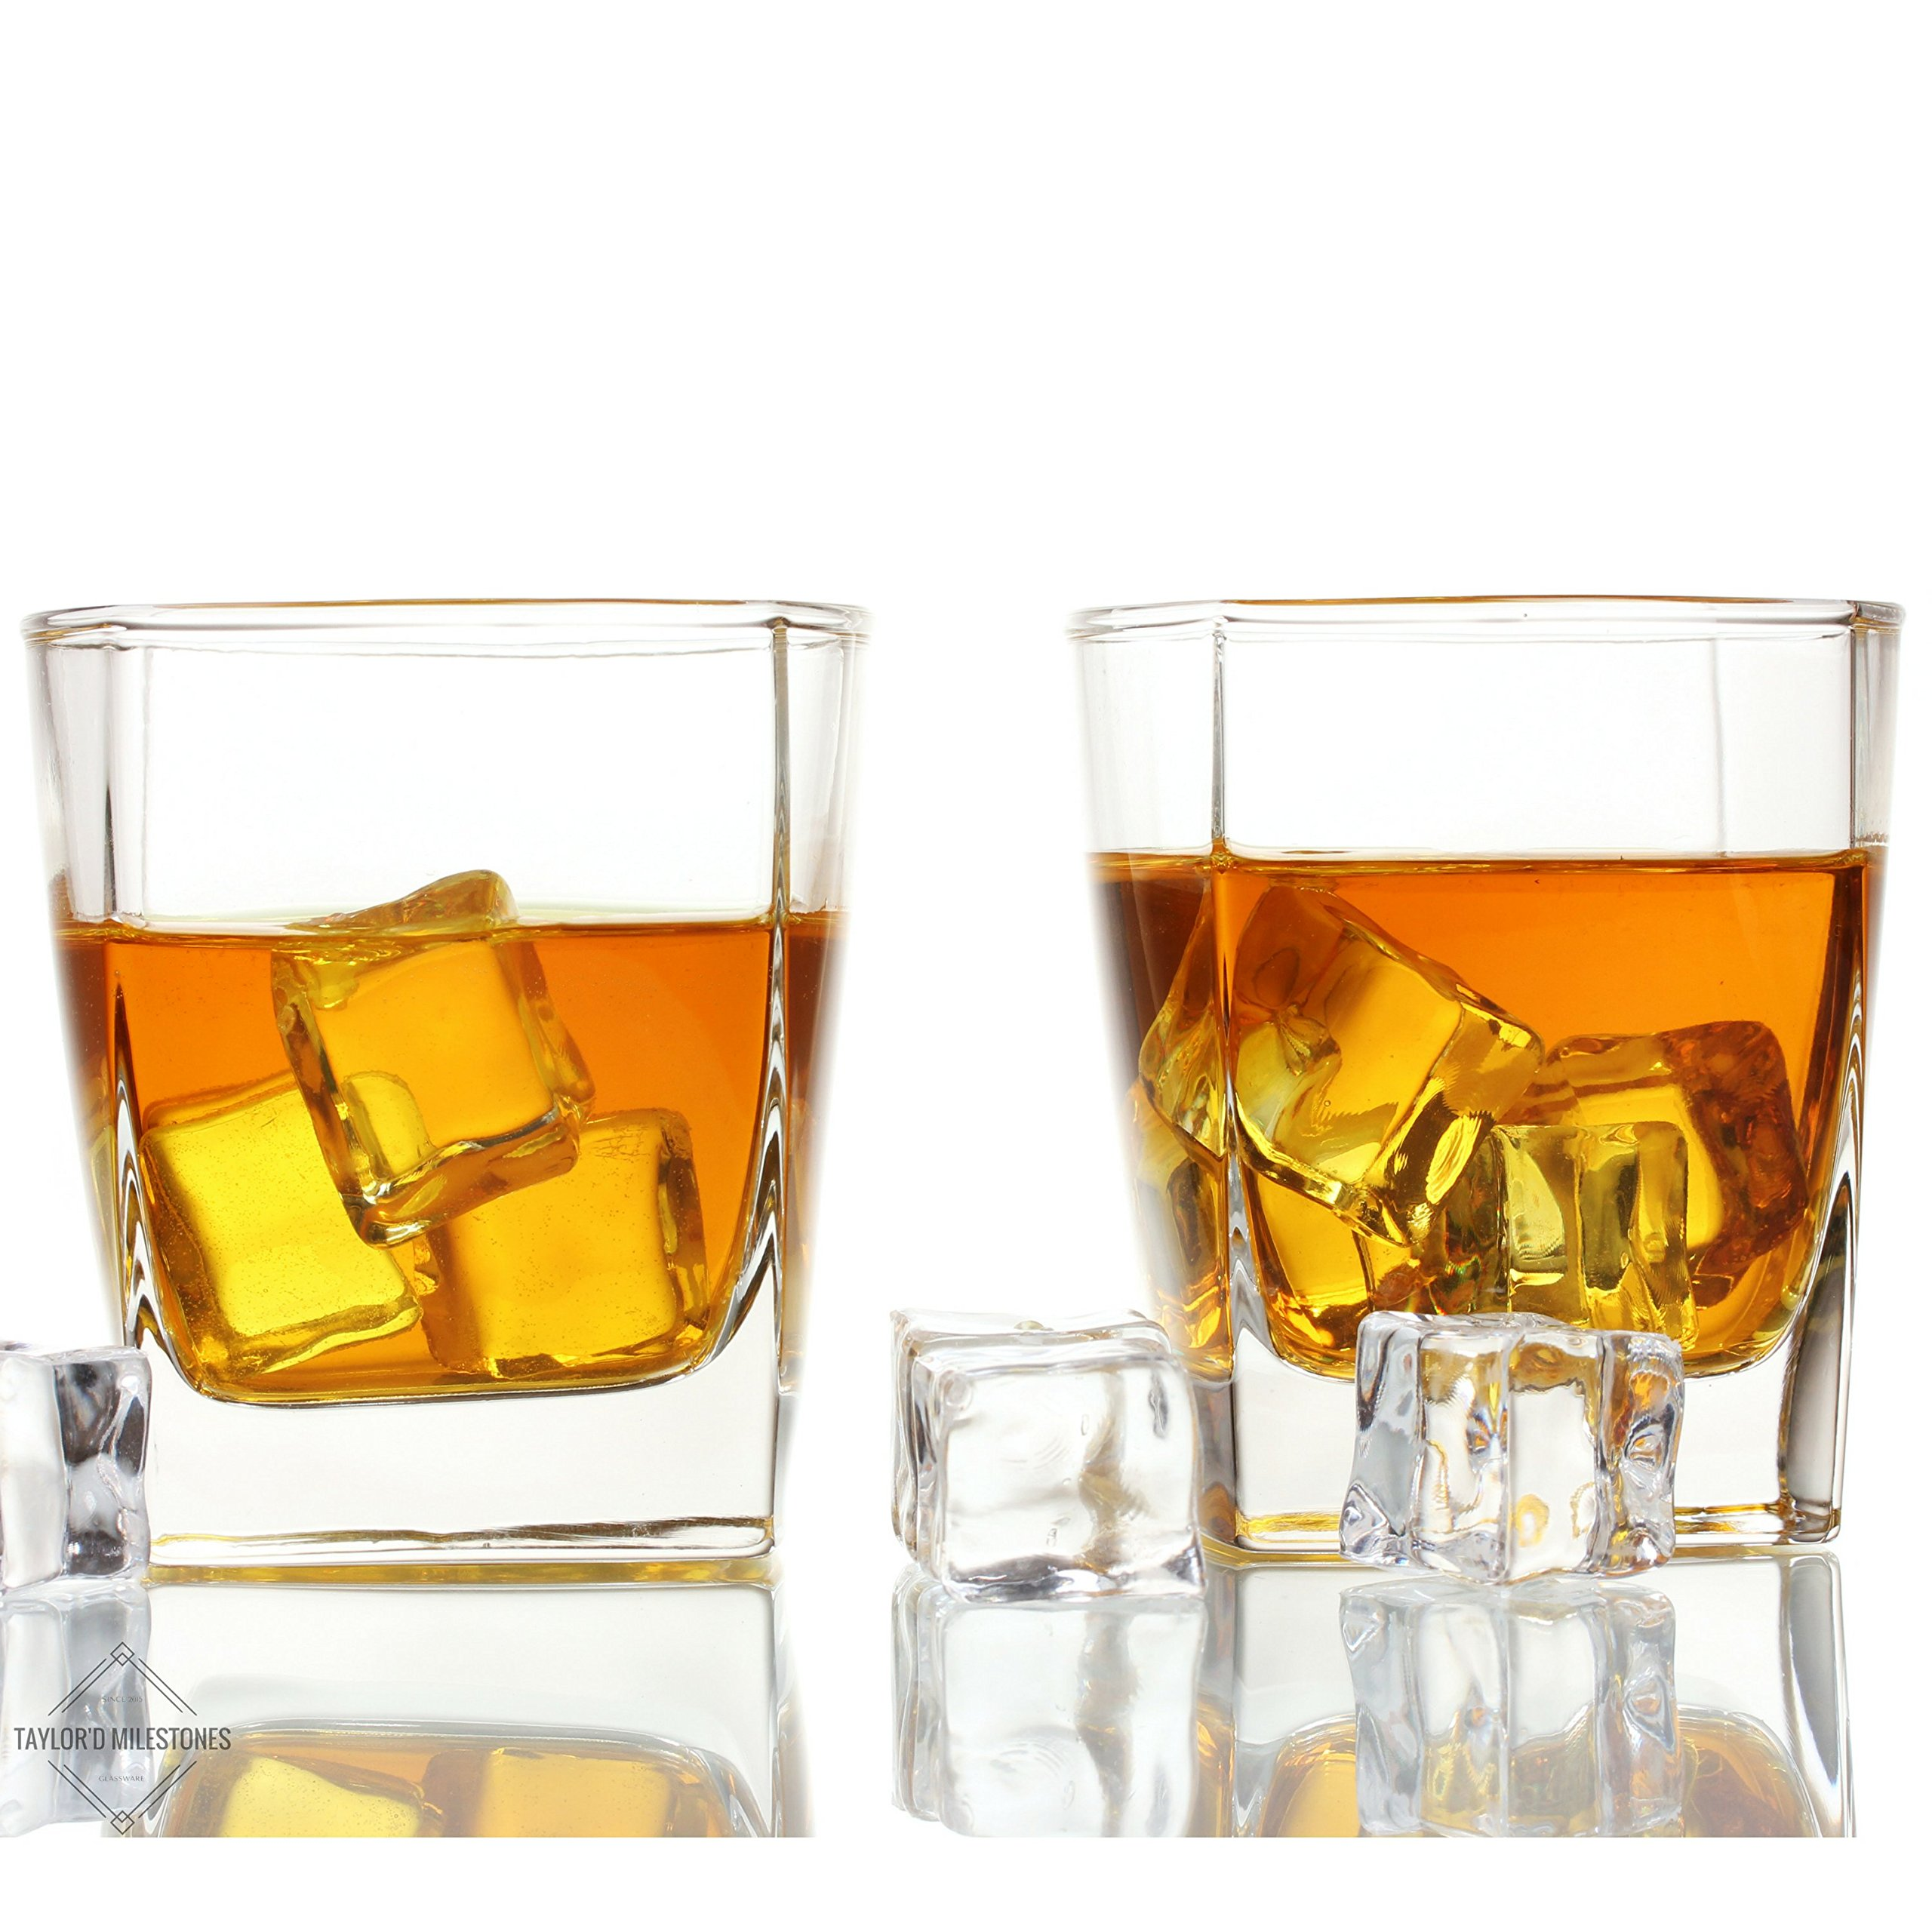 Whiskey Glass by Taylor'd Milestones - 10.5 oz Scotch Glasses. Gift Set Includes 2 Old Fashioned Tumblers with Square Base. Diamond Etched, Rocks Glassware for Bourbon, Home Bar & Everyday Use.